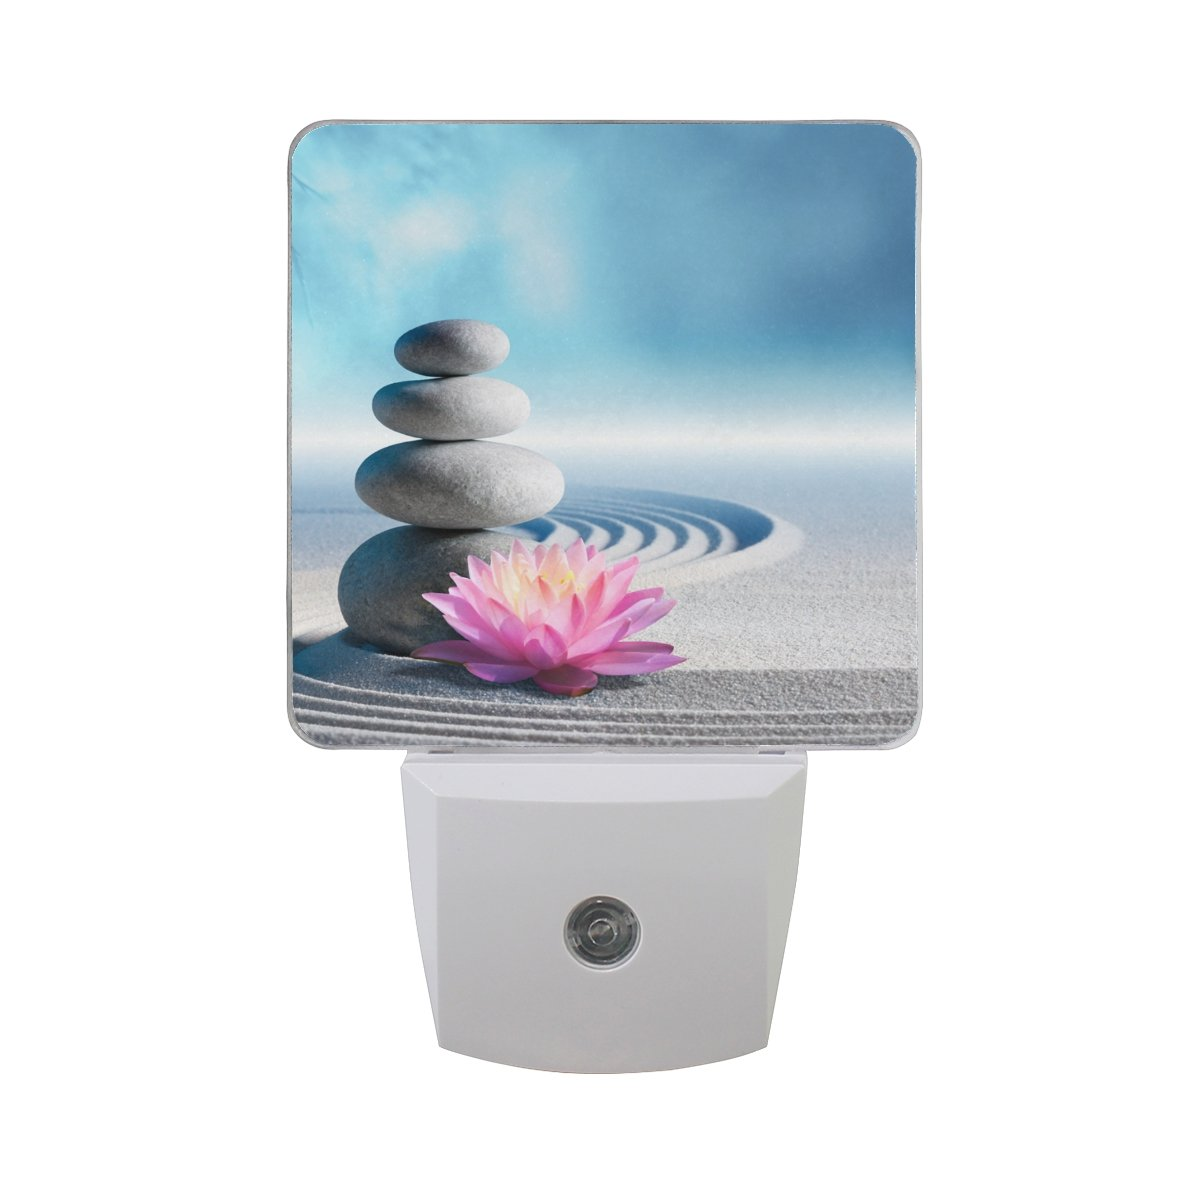 Naanle Set of 2 Sand Wave Water Lily And Spa Stone In Zen Garden With Blue Sky Auto Sensor LED Dusk To Dawn Night Light Plug In Indoor for Adults